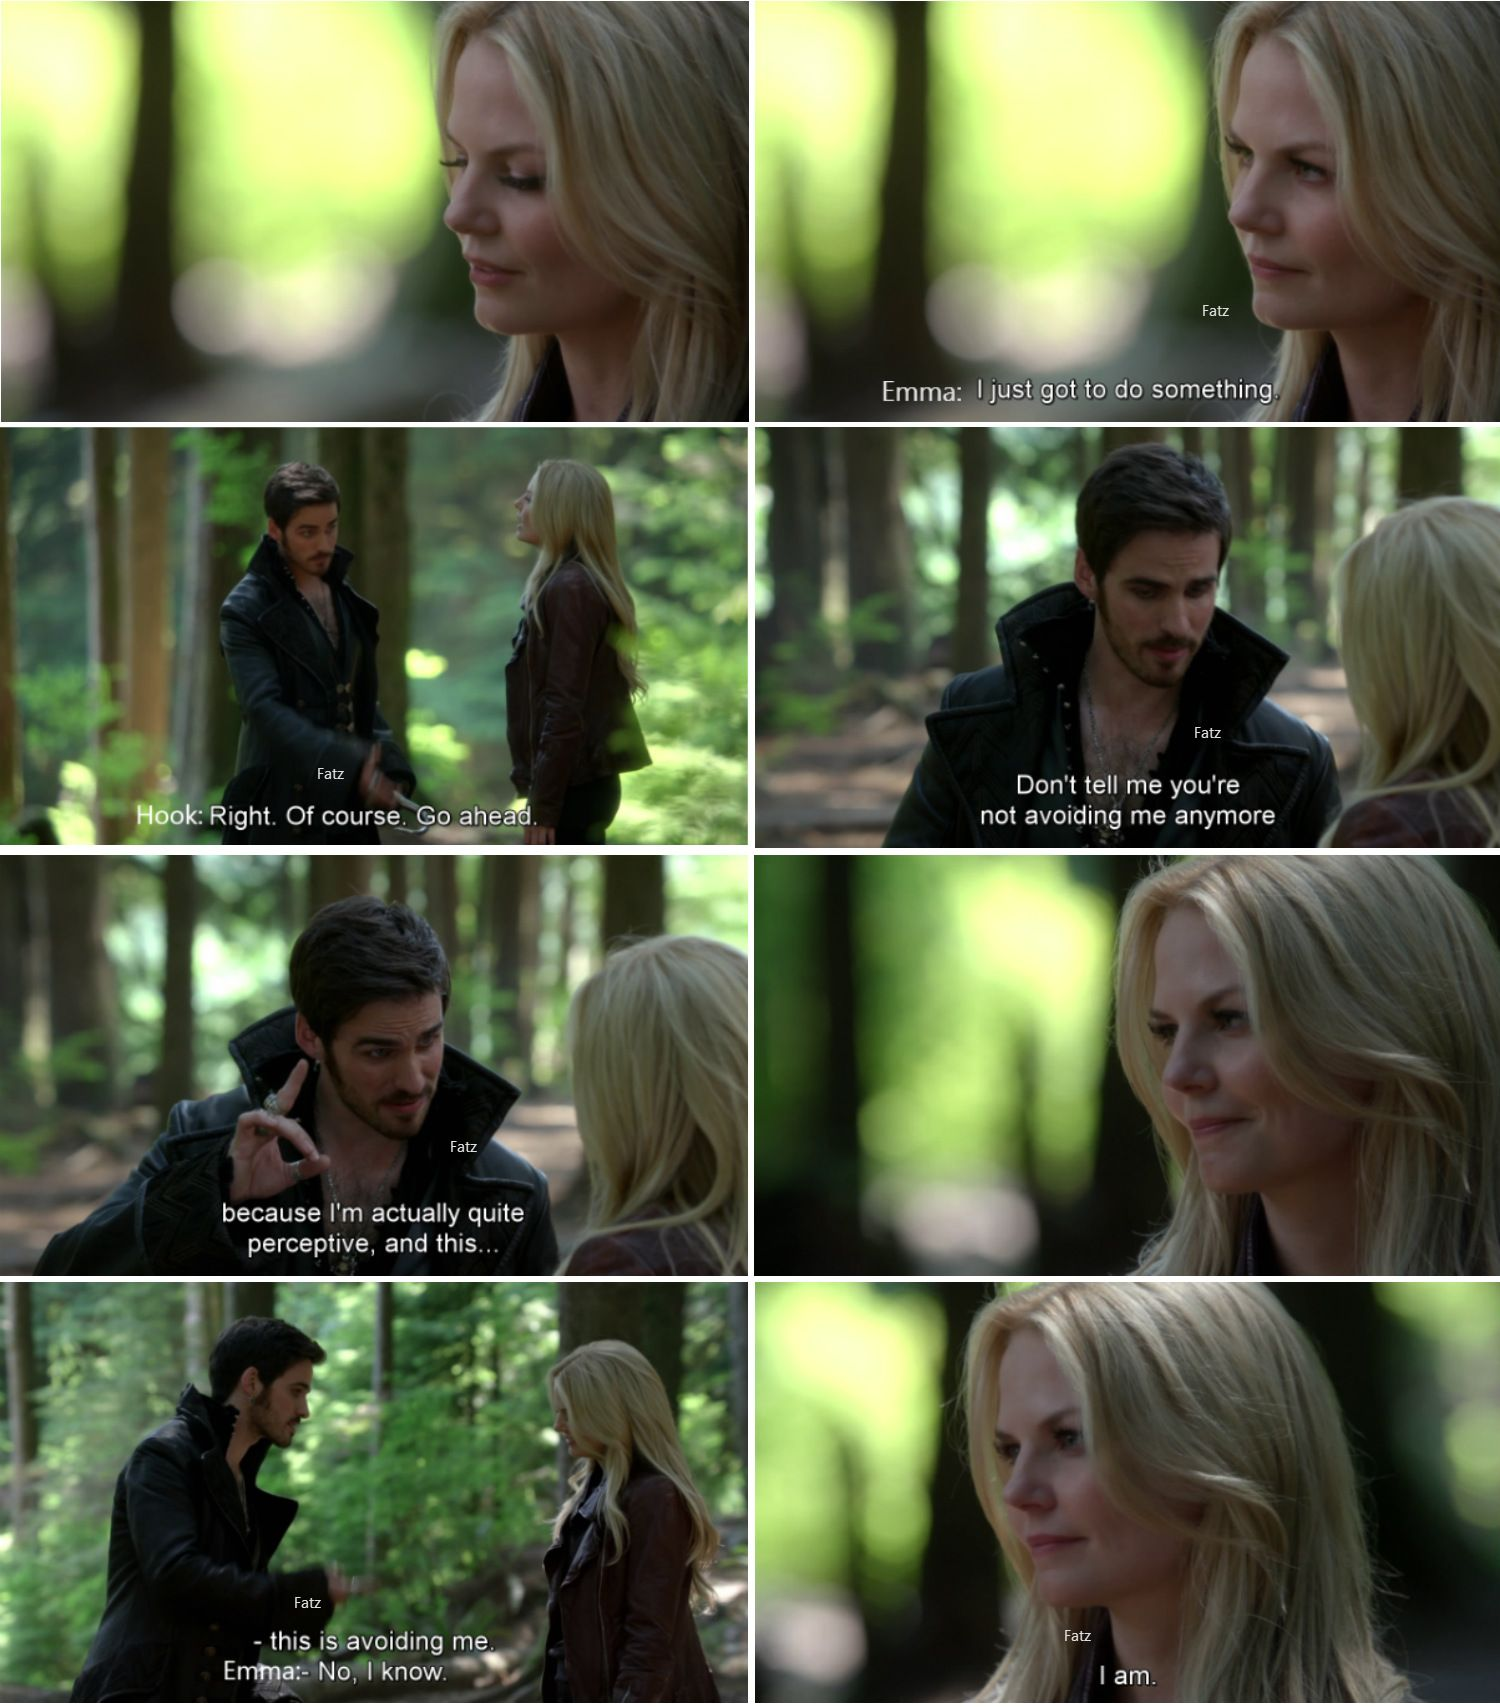 """Don't tell me u'r not avoiding me."" - Hook and Emma - 4 * 1 ""The Tale of two sisters"" #CaptainSwan"